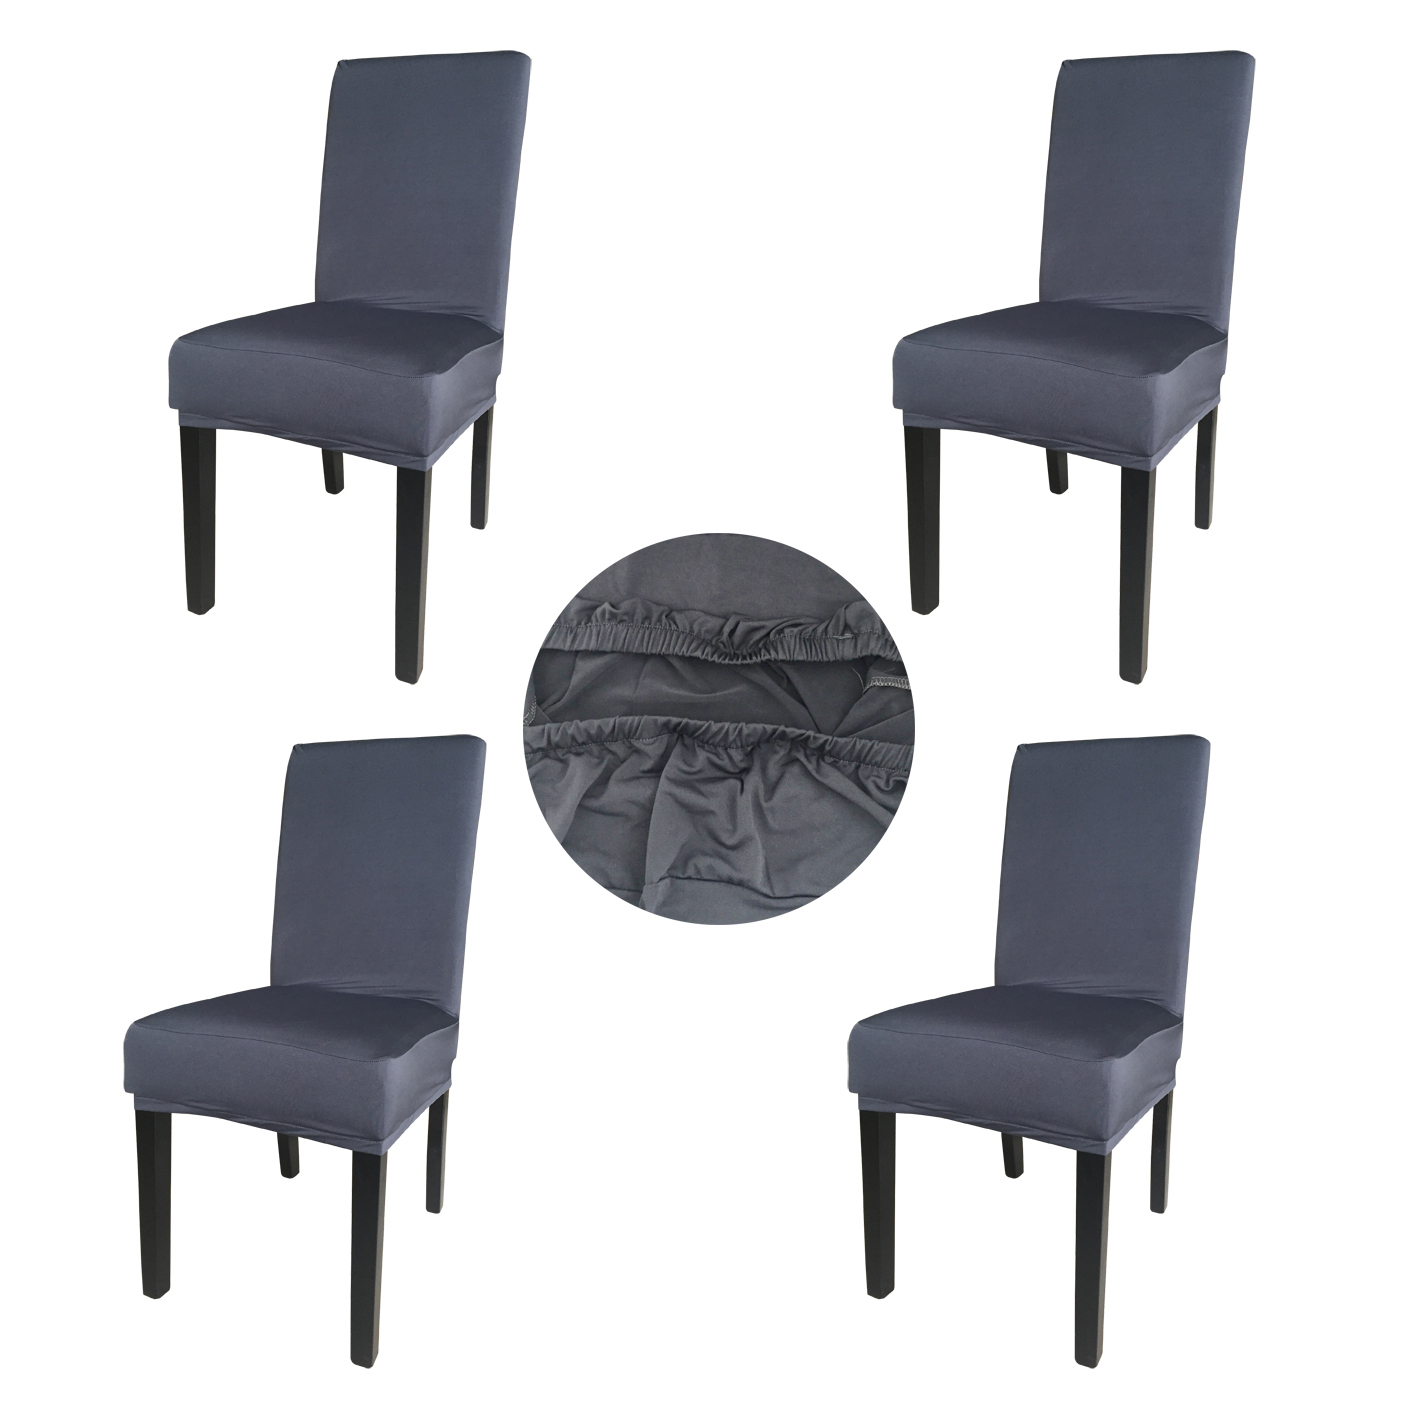 Wholesales 4 Pieces Gray Spandex Fabric Stretch Removable Washable Dining Room Chair Cover Protector Seat Slipcovers SCS-4GR